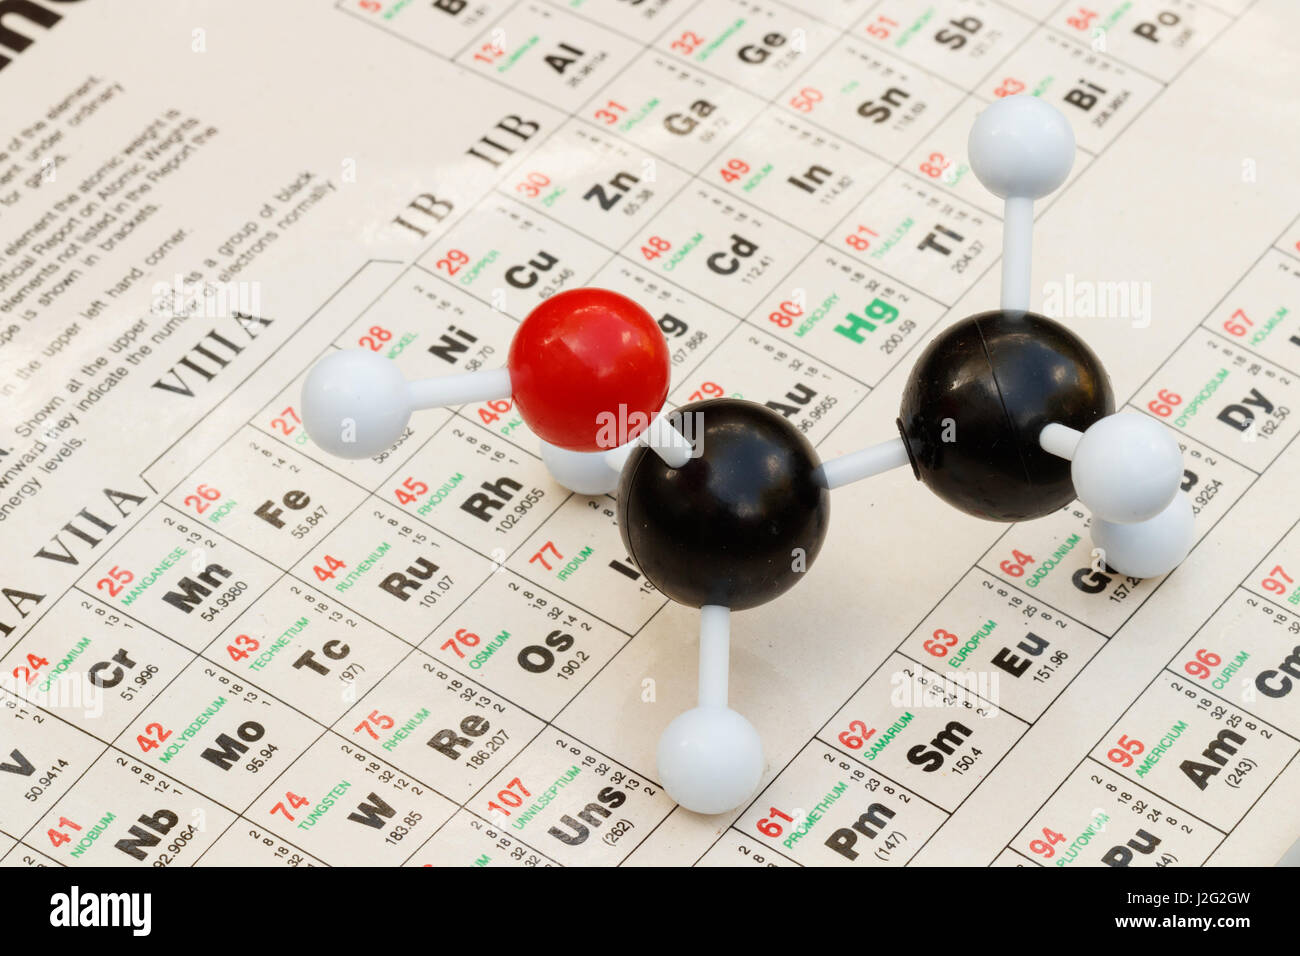 Periodic table hydrogen stock photos periodic table hydrogen stock ball and stick model of ethanol alcohol c2h5oh with the periodic urtaz Image collections